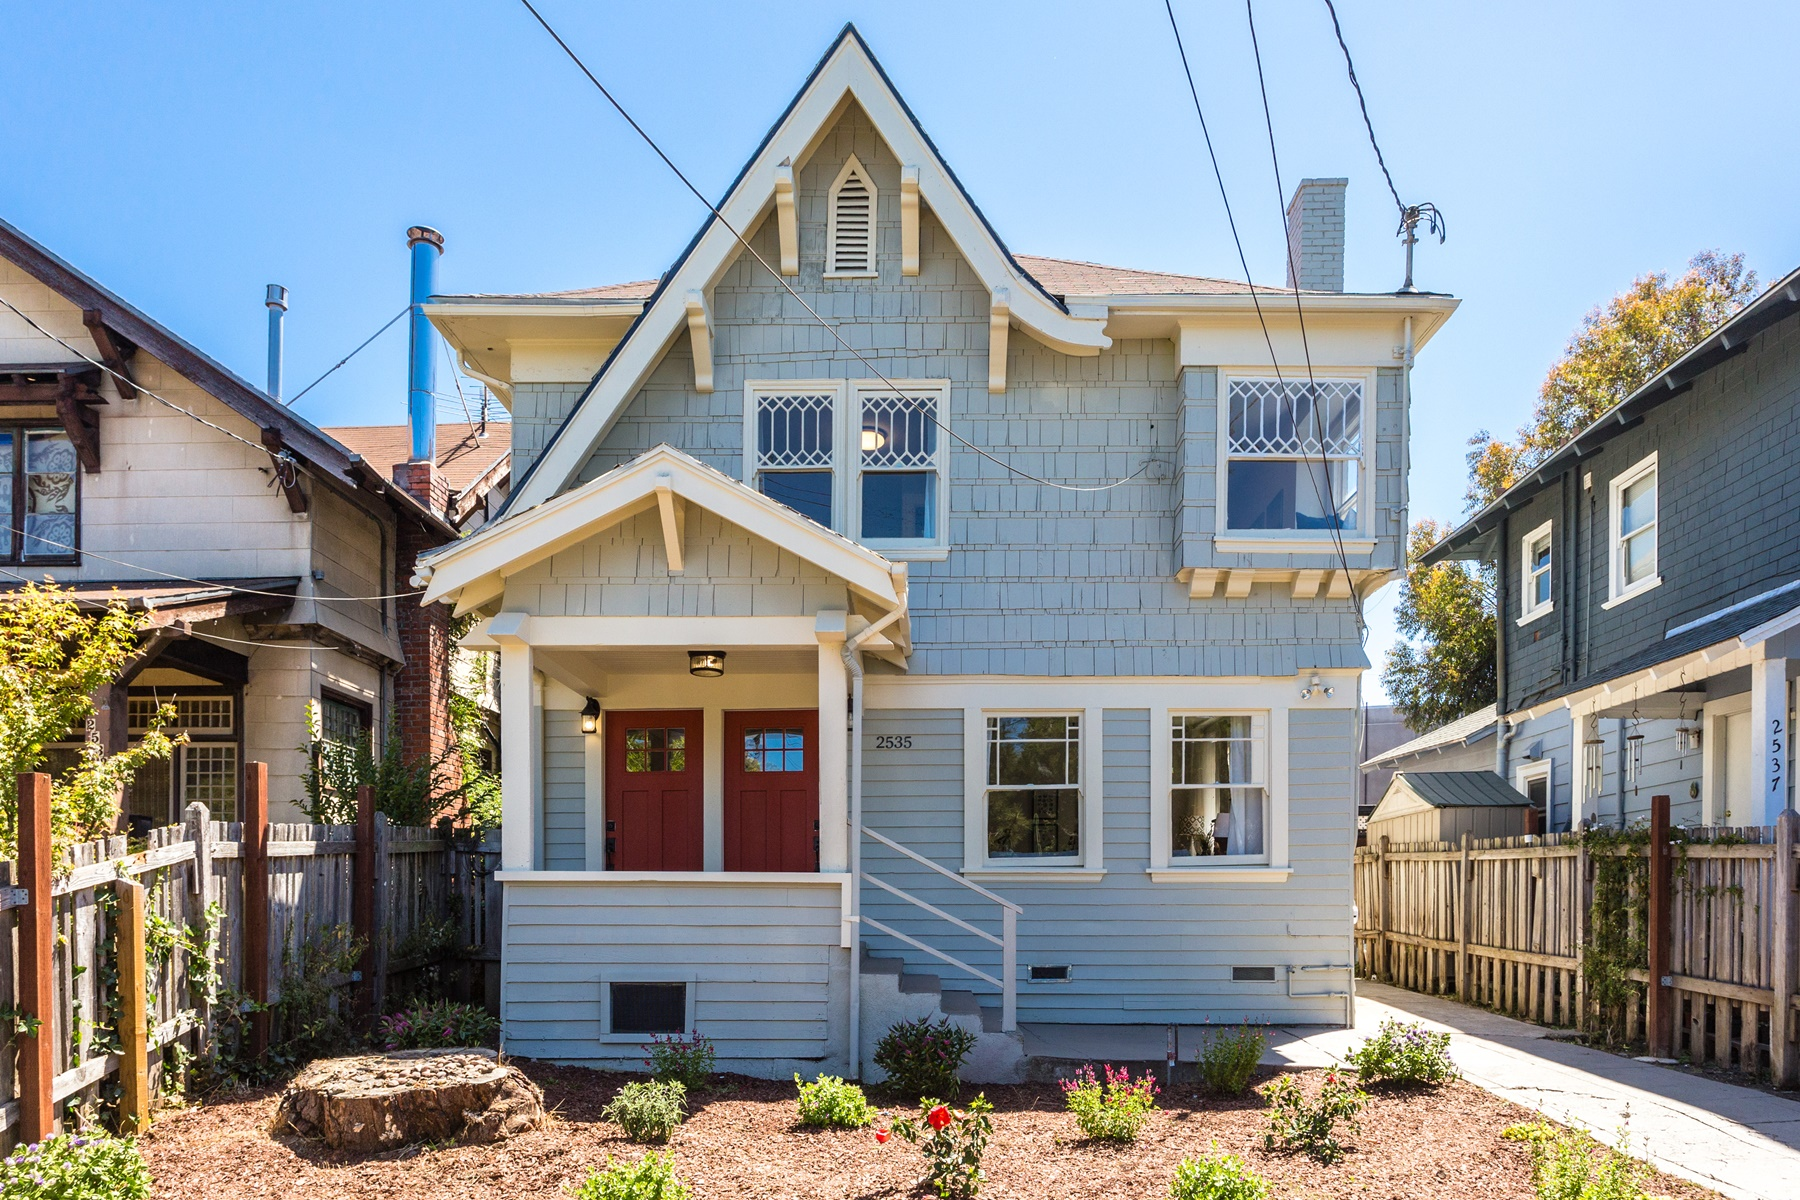 Maison unifamiliale pour l Vente à Charming And Sunny Duplex 2535 Chilton Way Berkeley, Californie 94707 États-Unis